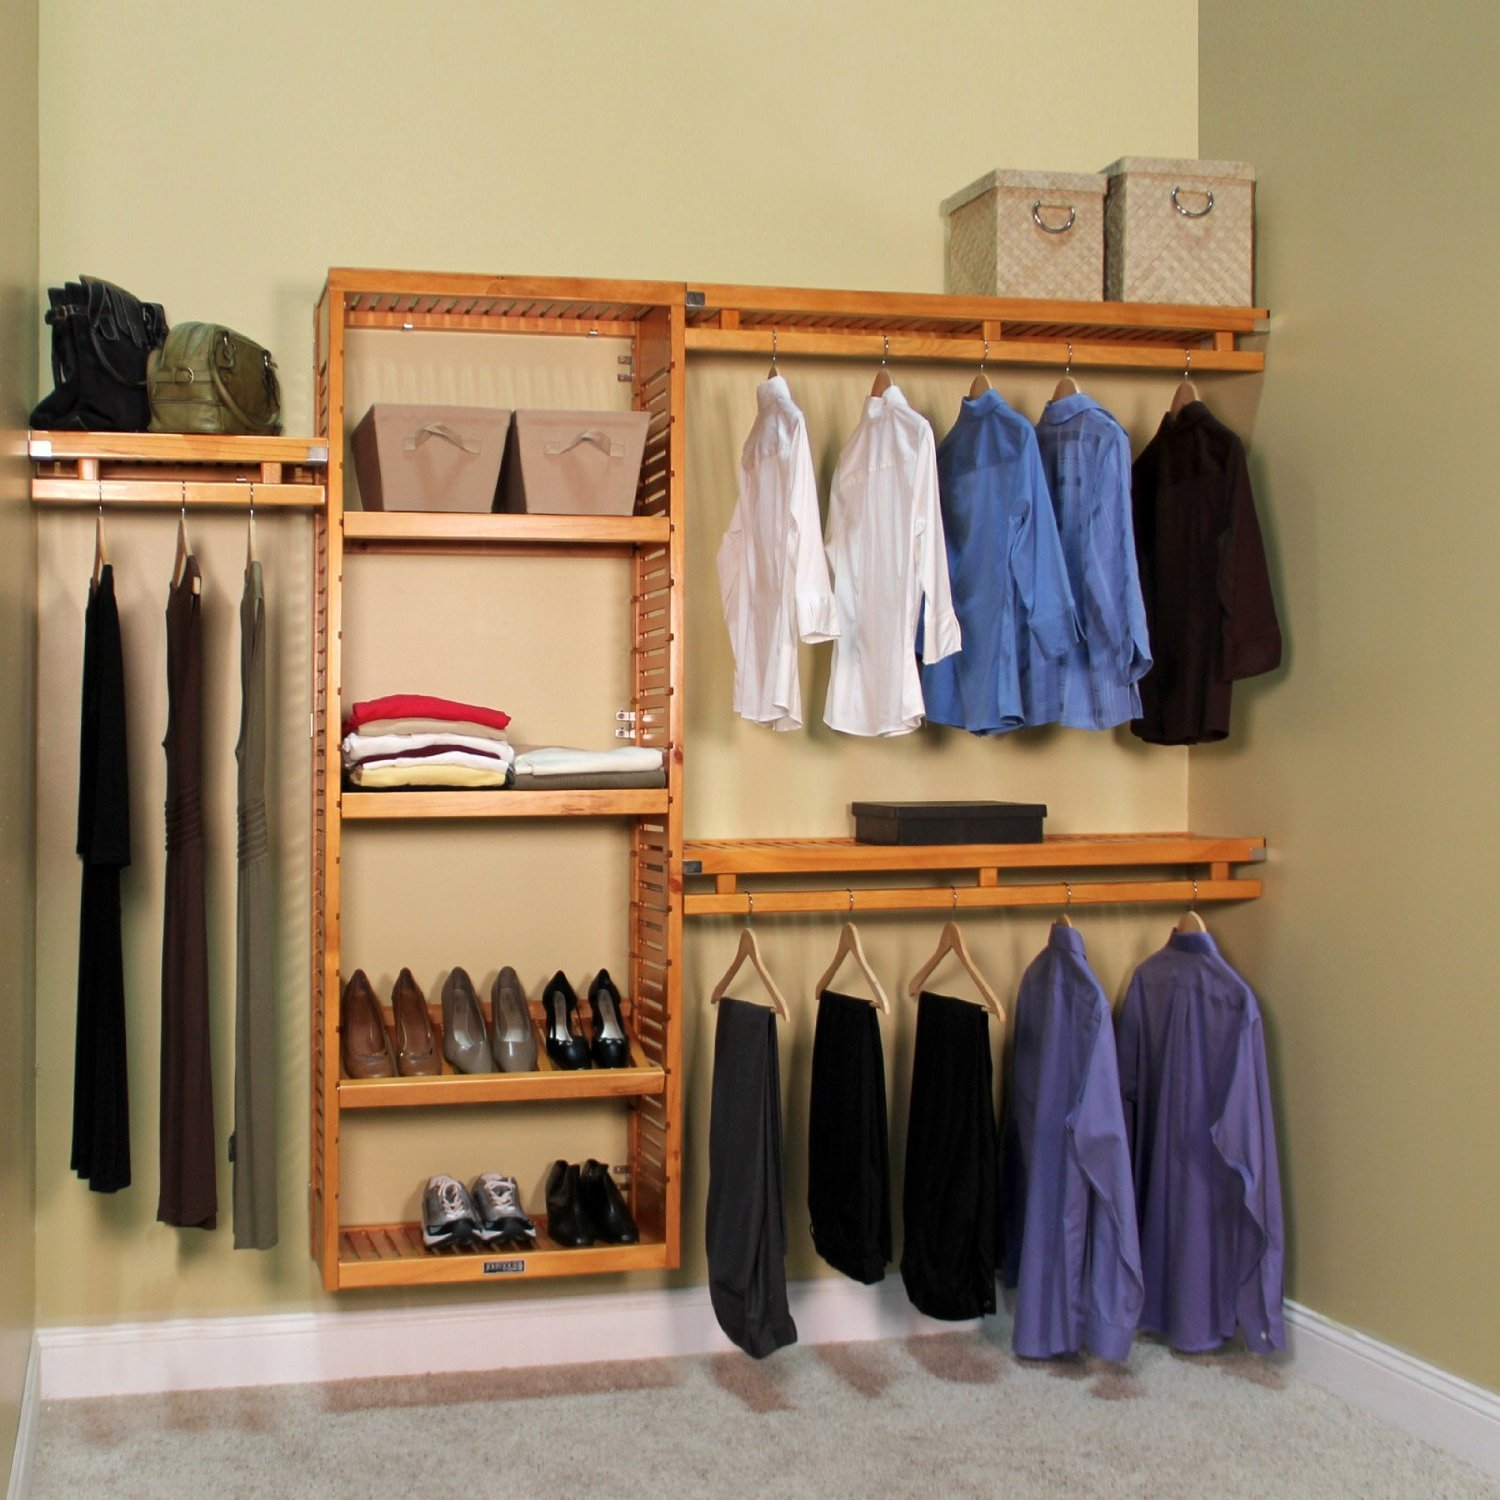 size shelves home impressions depot wood the kit shelf in design mesmerizing deluxe systems hutch and closet for organizer of organizers system full amusing white